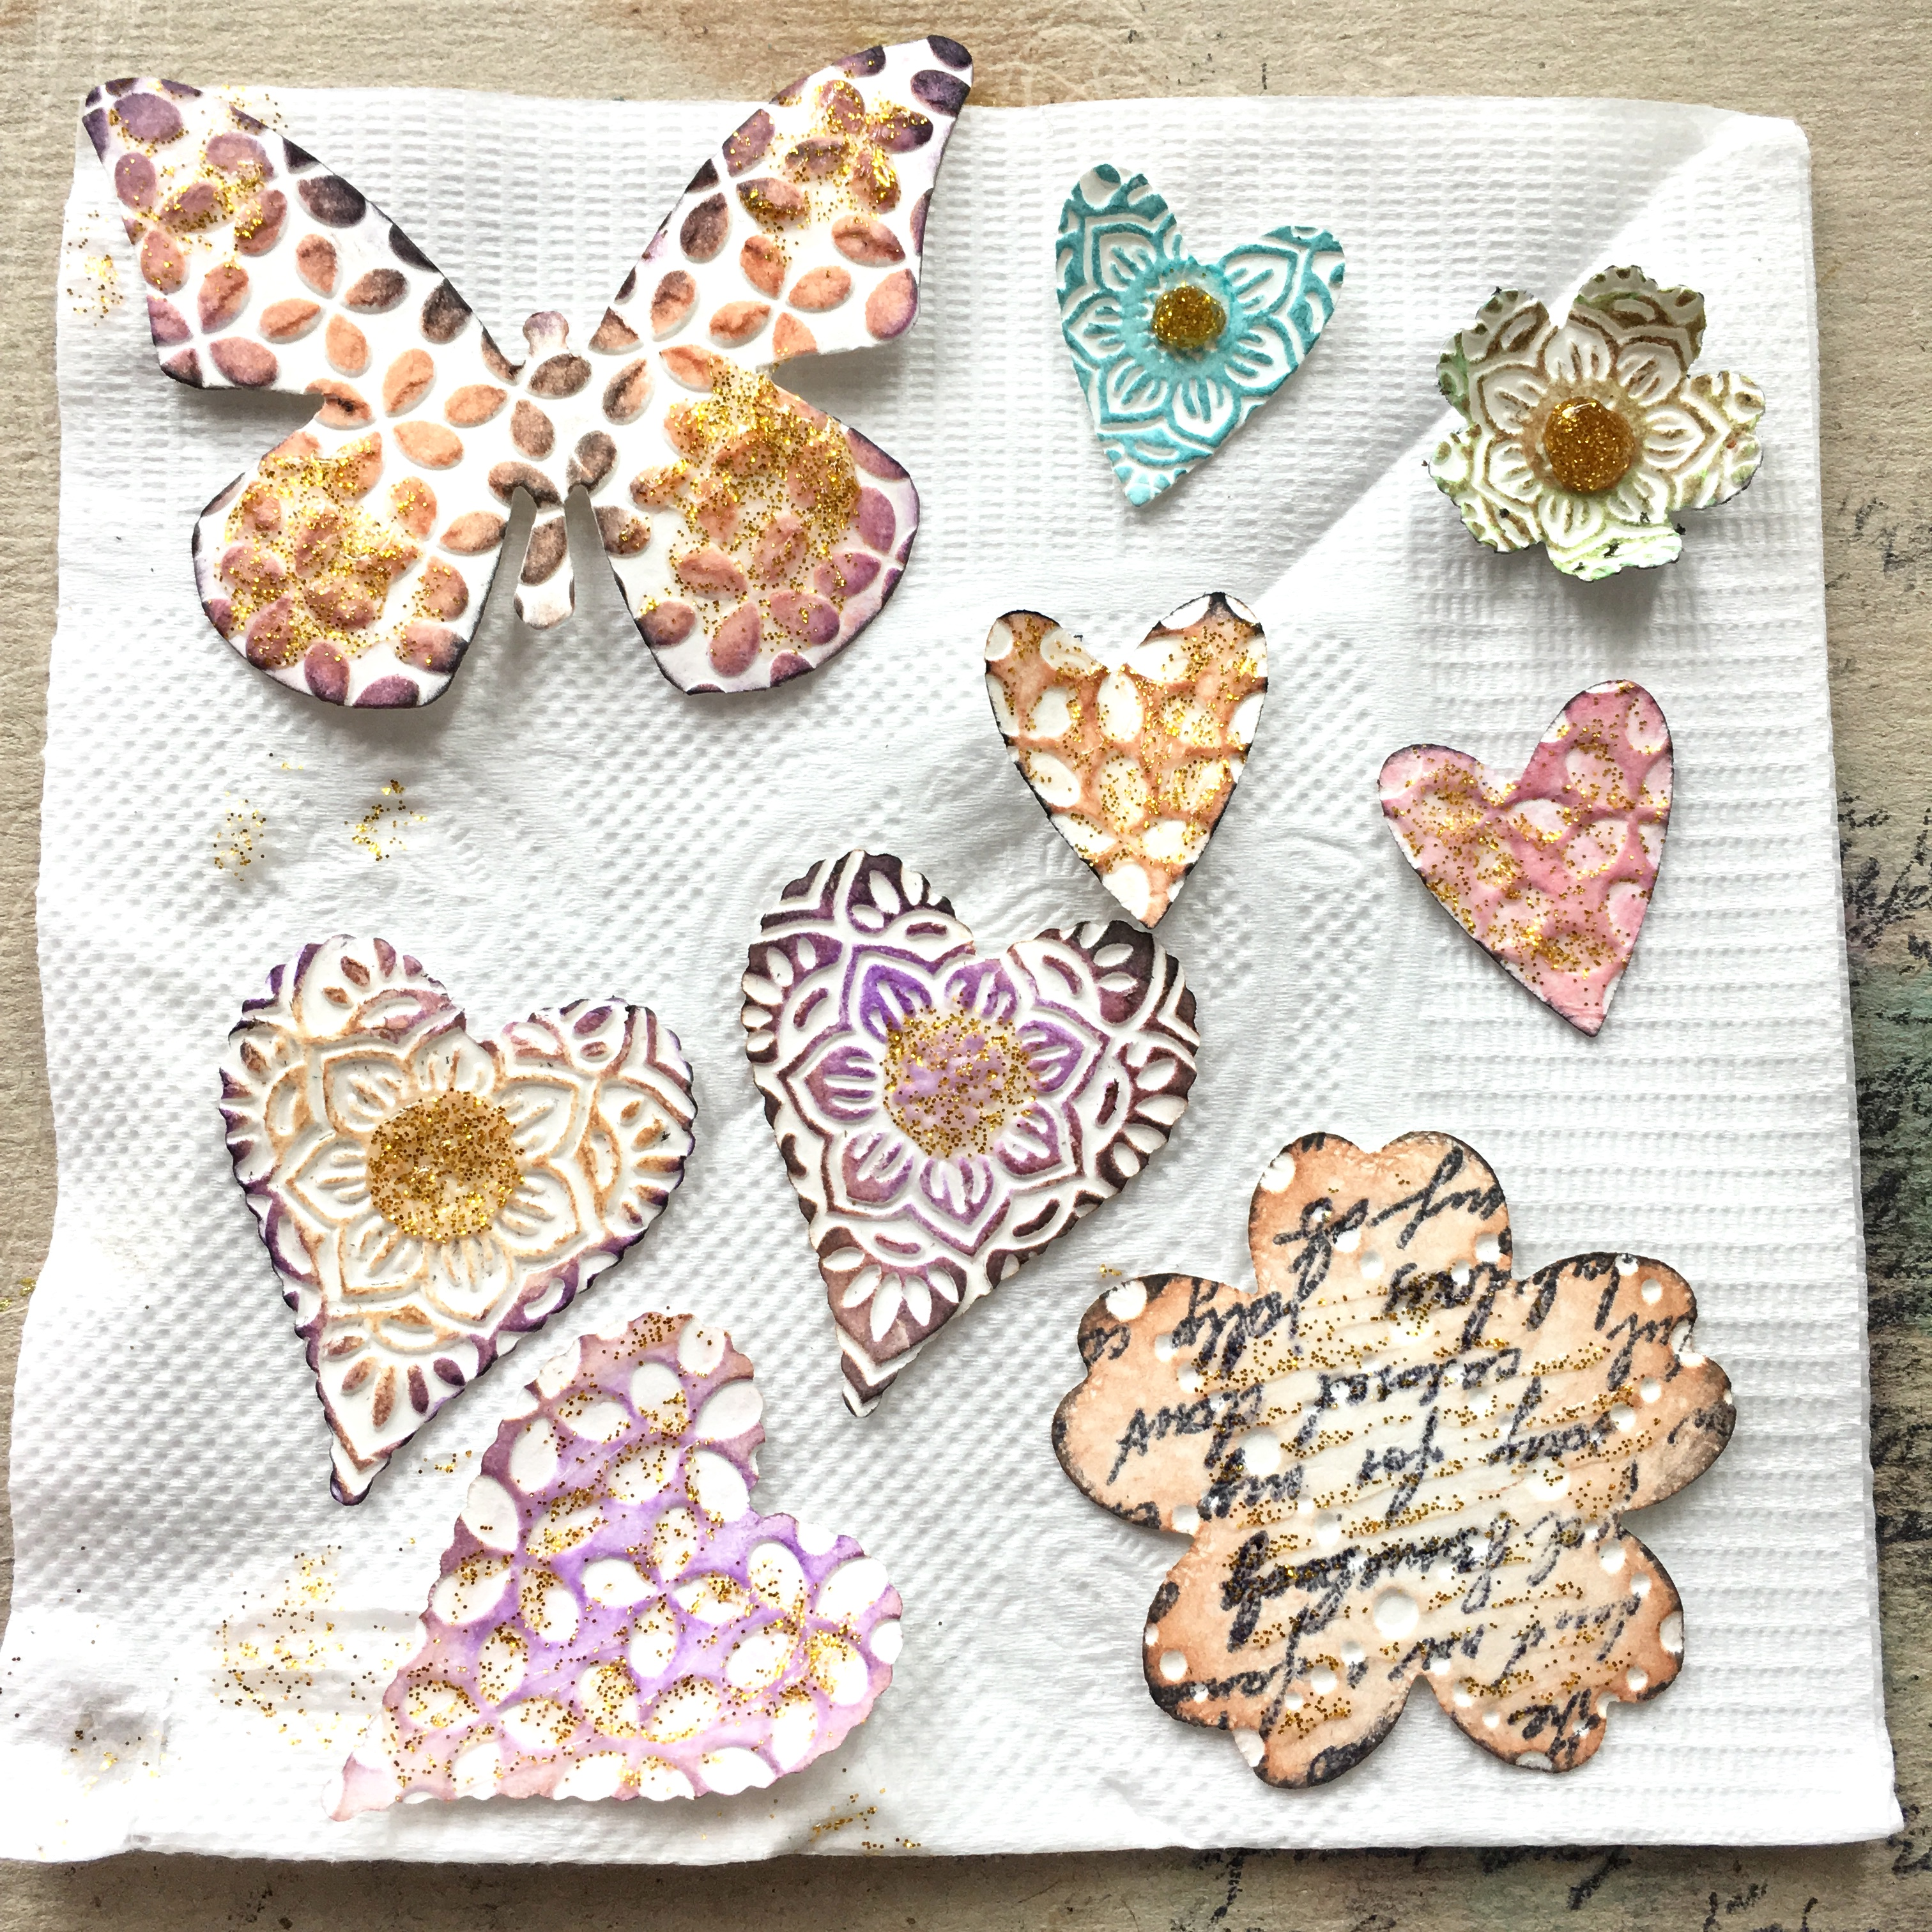 drying paper embellishments with glitter glue